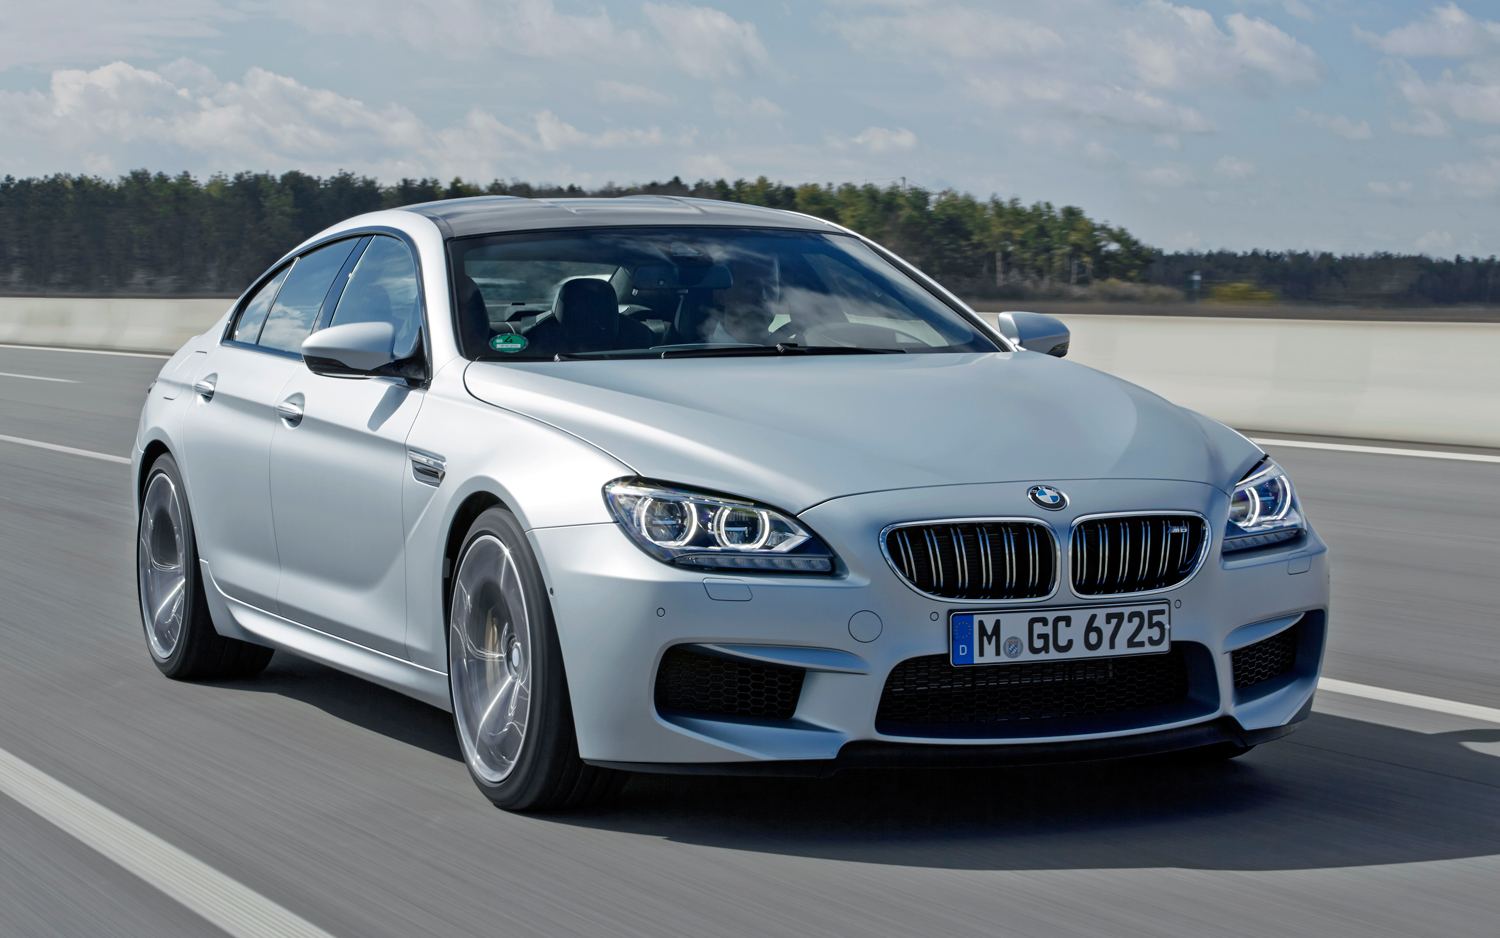 BMW M6 Gran Coupe 2014 #2